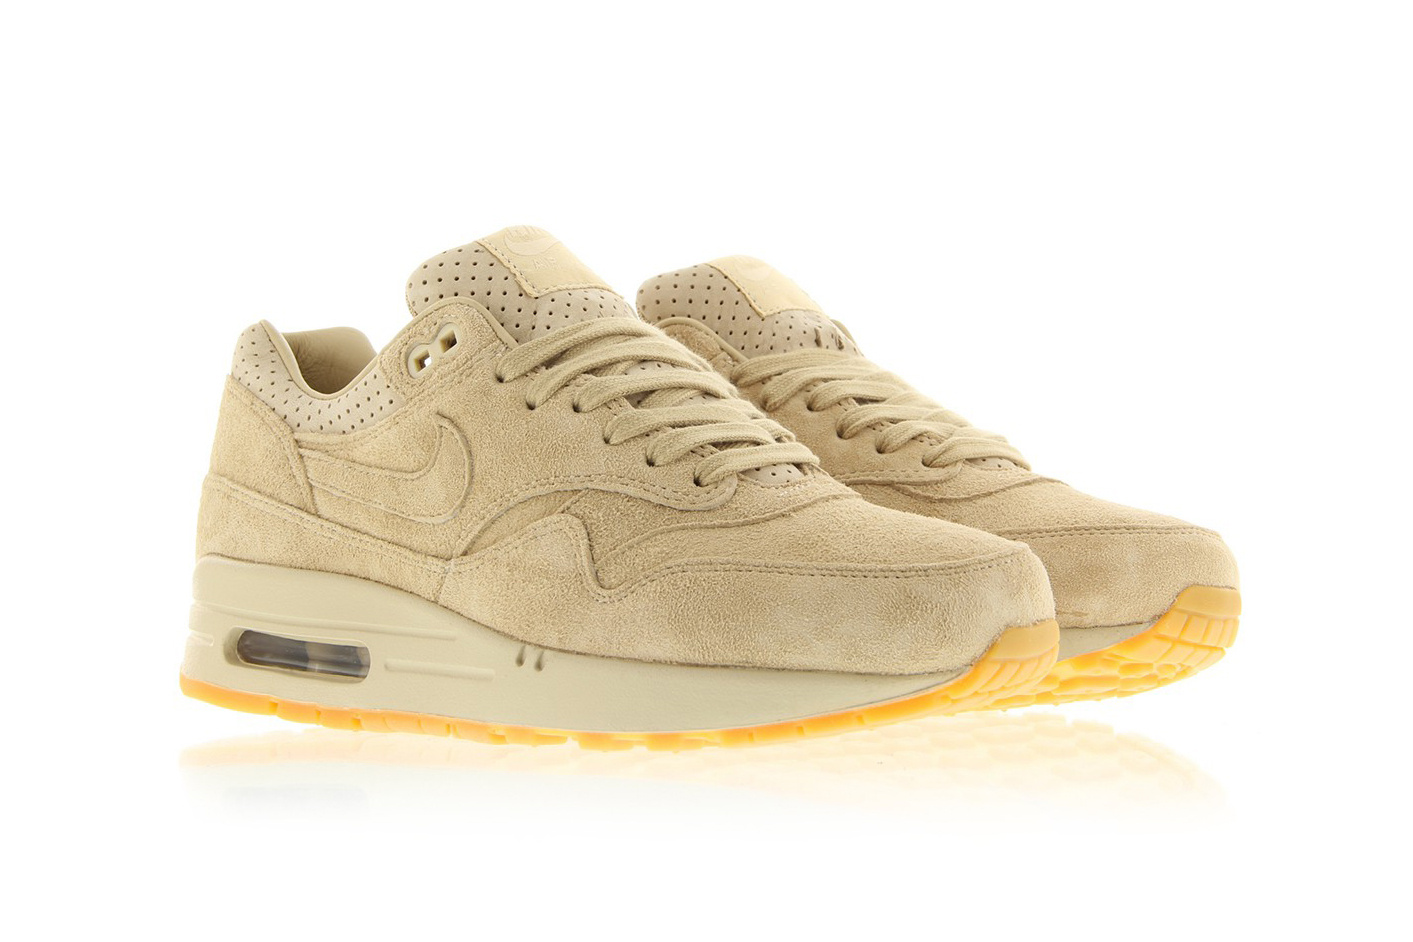 reputable site 8a248 999ef Get Fall Ready In The Nike Air Max 1 Pinnacle